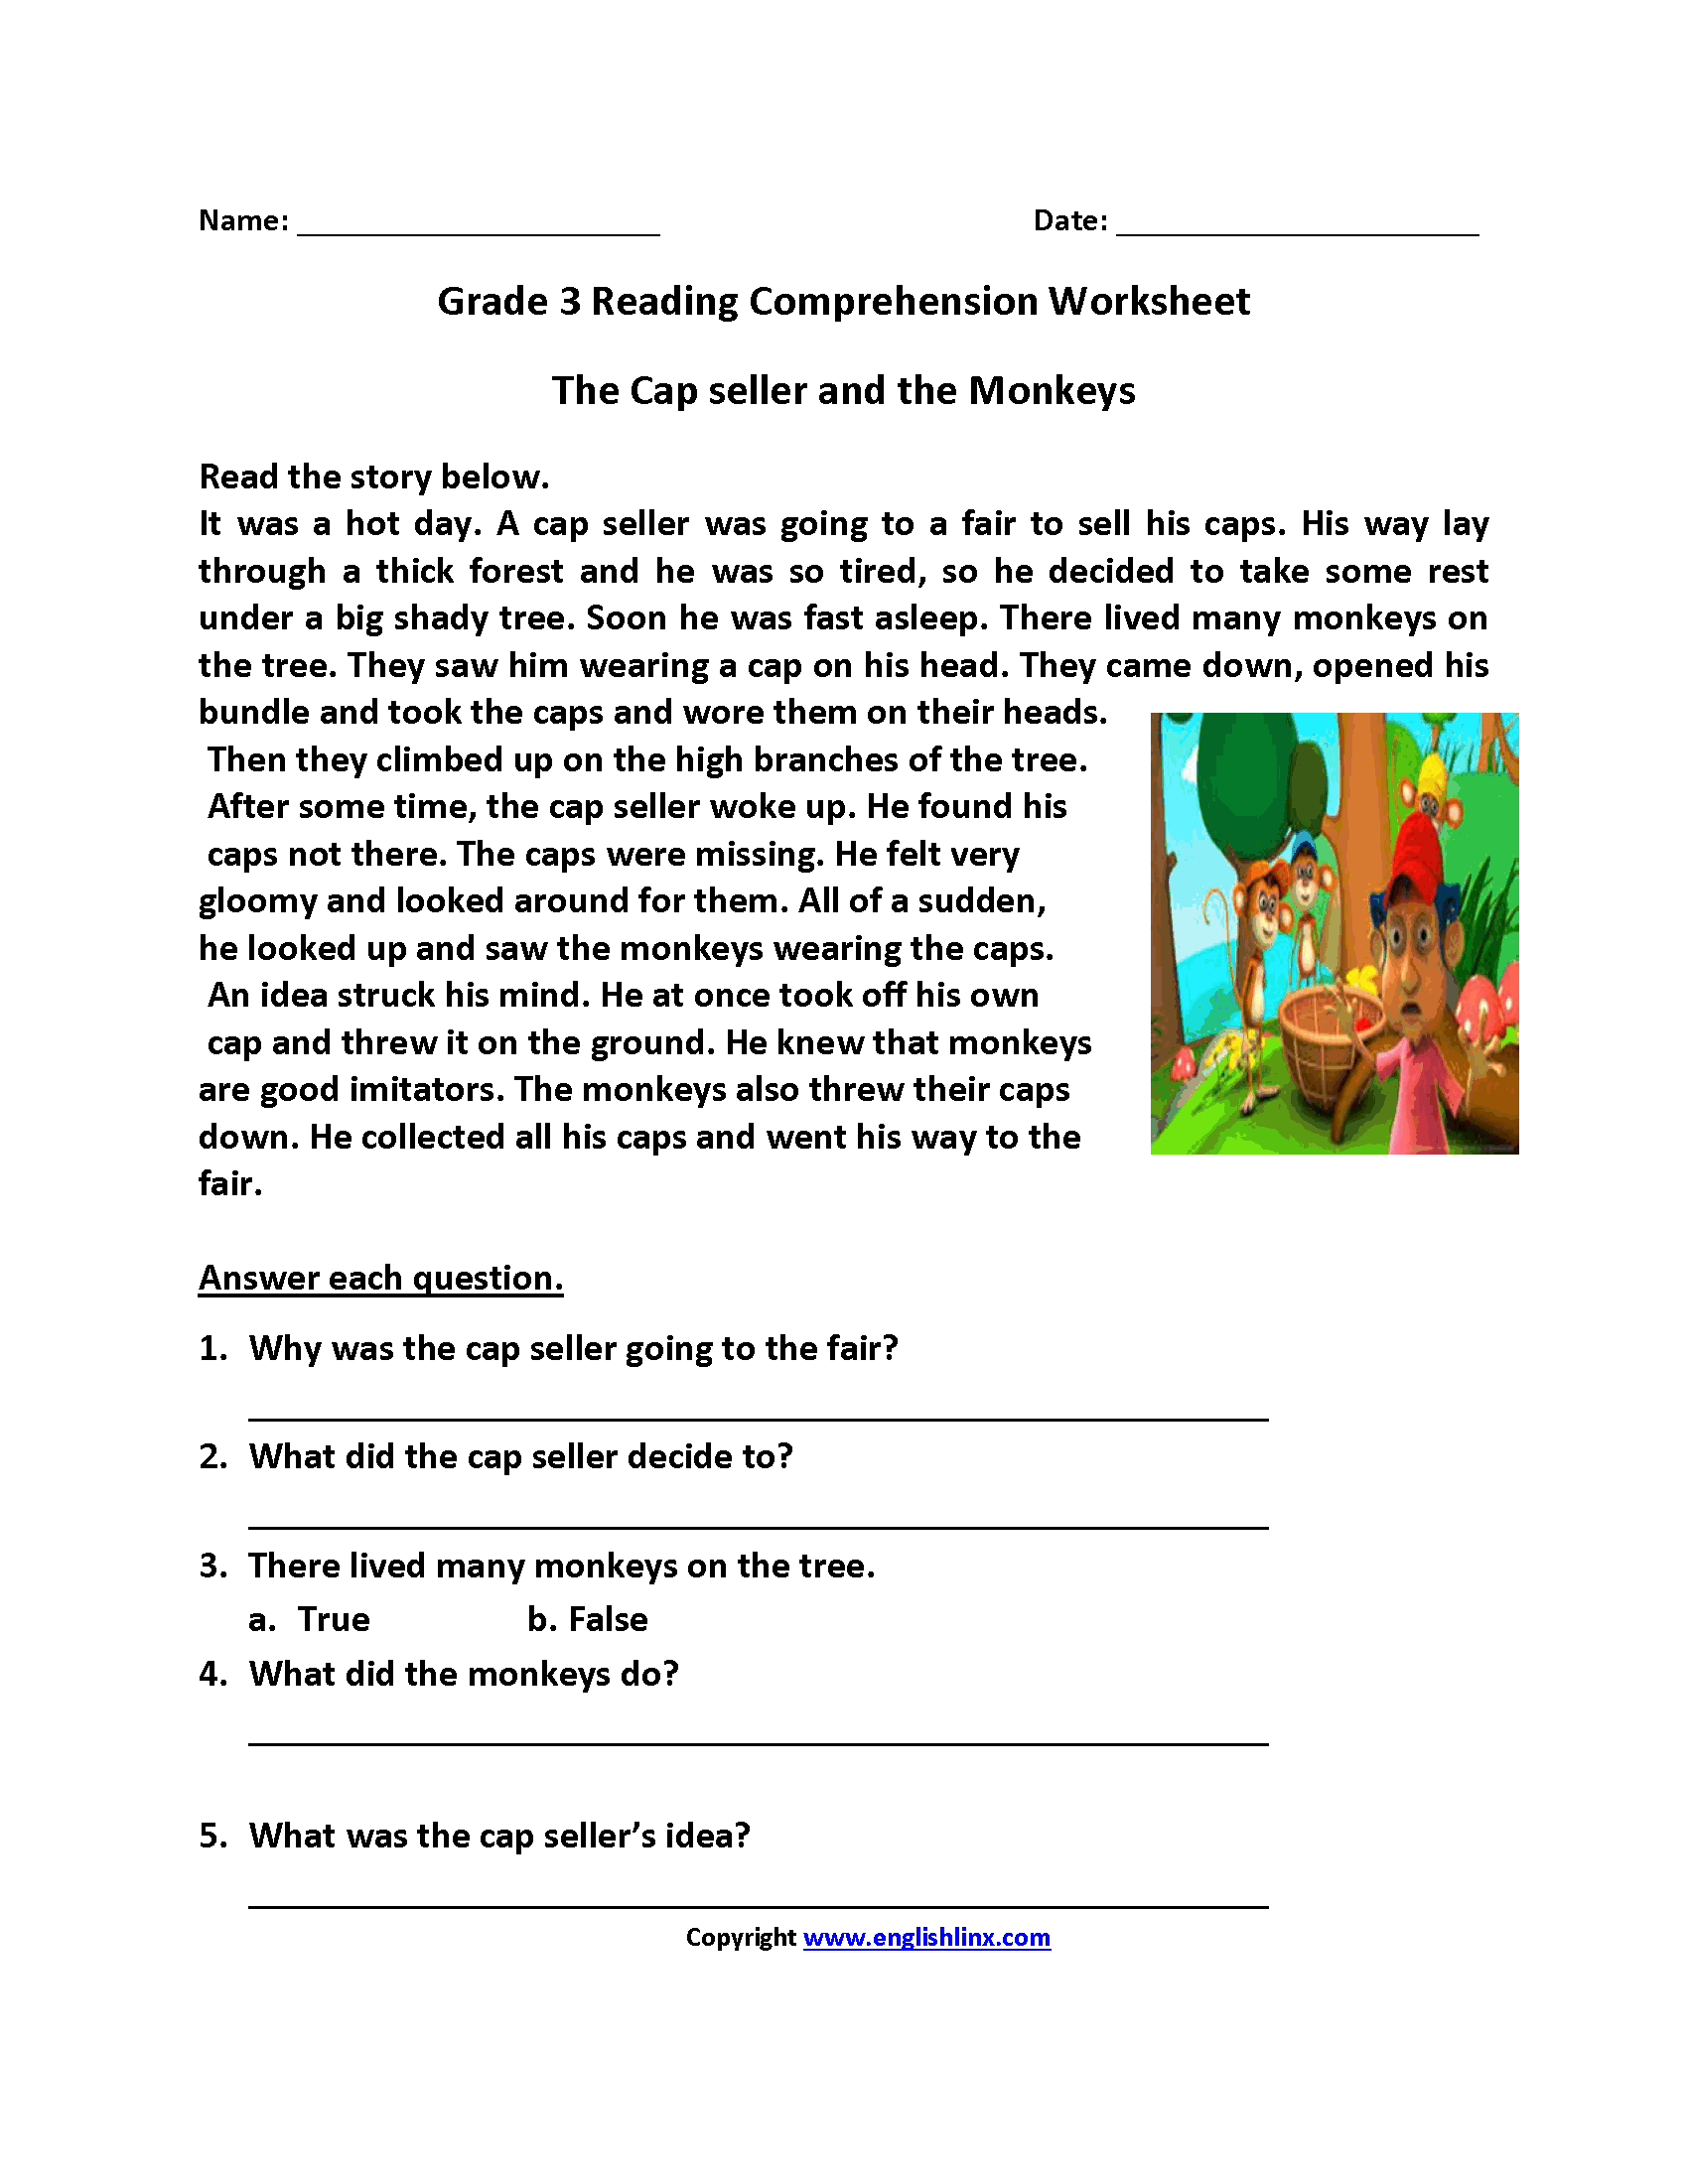 Worksheet Third Grade Comprehension Worksheets Reading Worksheets - Free Printable 3Rd Grade Reading Worksheets